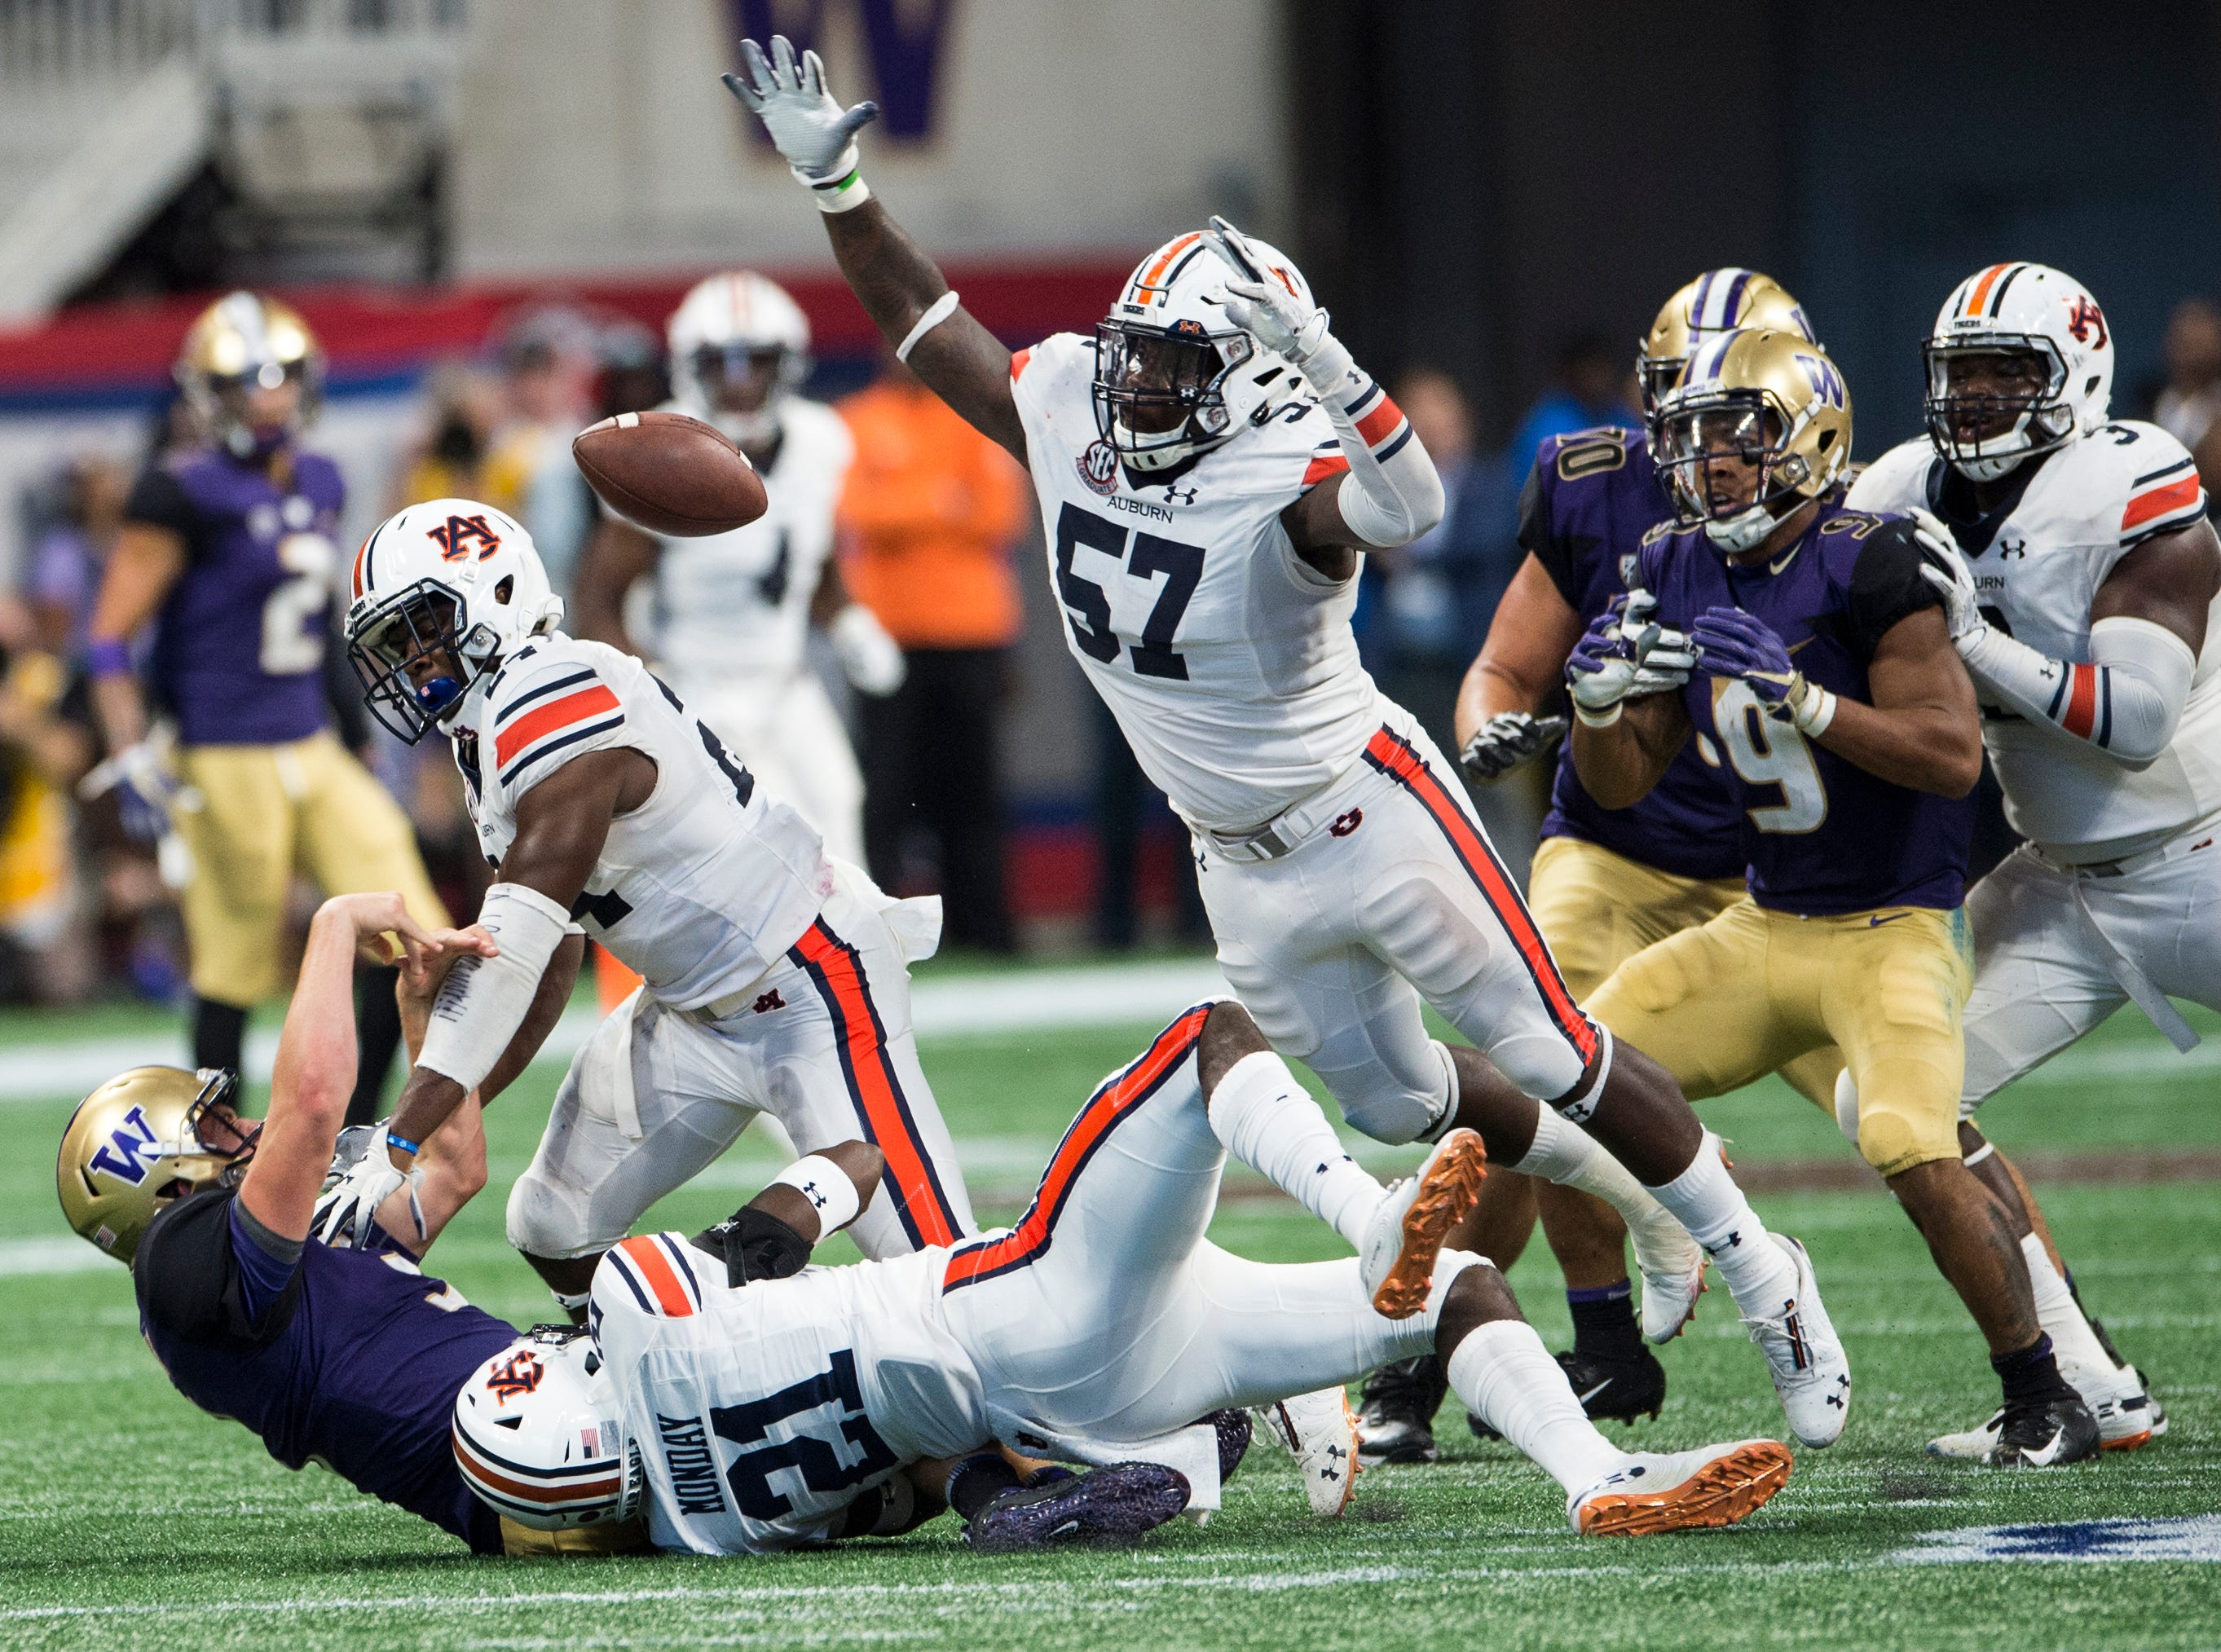 A swarm of Auburn defenders bring down Washington's Jake Browning (3) as he throws a desperation pass on fourth down at Mercedes-Benz Stadium in Atlanta, Ga., on Saturday, Sept. 1, 2018. Auburn defeated Washington 21-16 in the Chick-fil-a Kickoff Game.